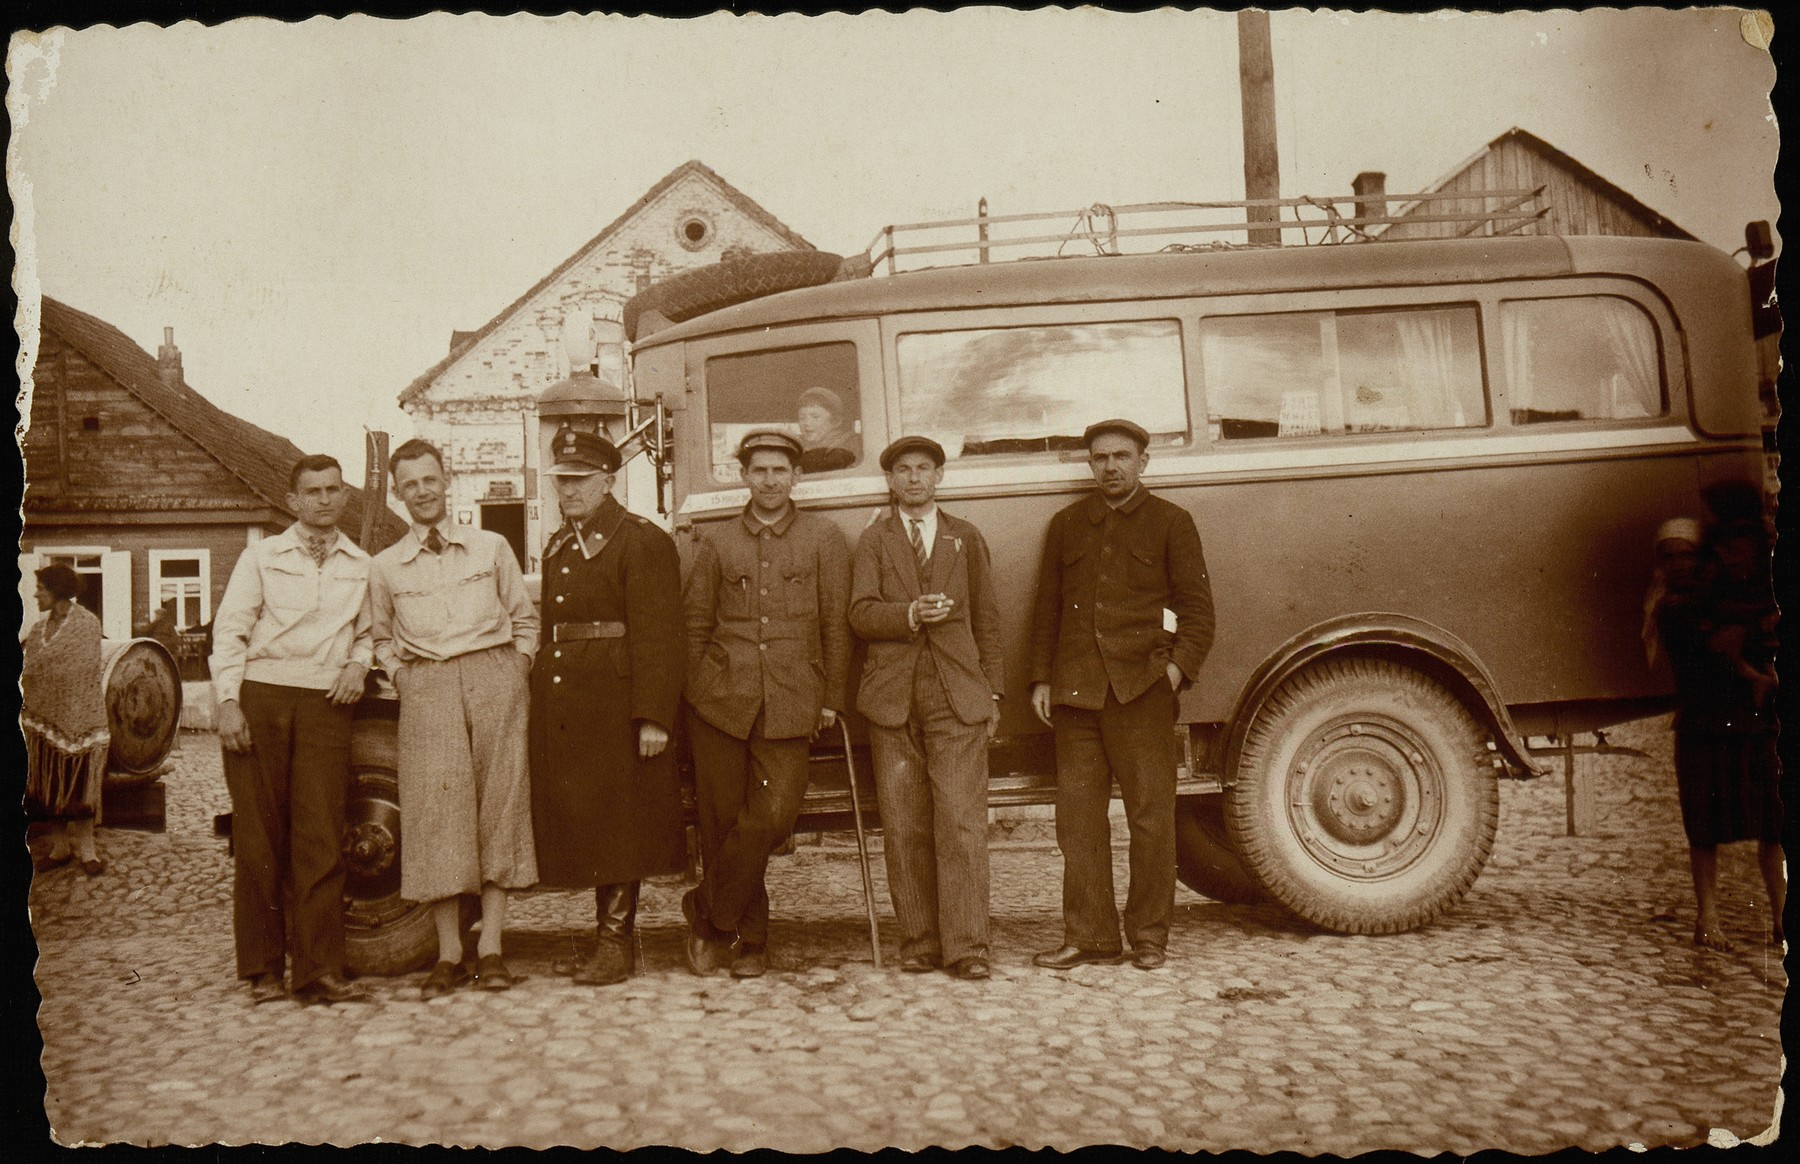 Bus drivers and gas station owners stand next to a bus parked by the shtetl's gas station and bus stop.  (left to right) Moshe Slonimski; Israel Erlich; Avraham Krisilov; a local Polish policemen; and two bus drivers.  Slonimski and Krisilow were co-owners of the Shell Oil station.  Both were murdered by the Germans during the September 1941 mass shooting action.  Israel Erlich was killed by the AK.